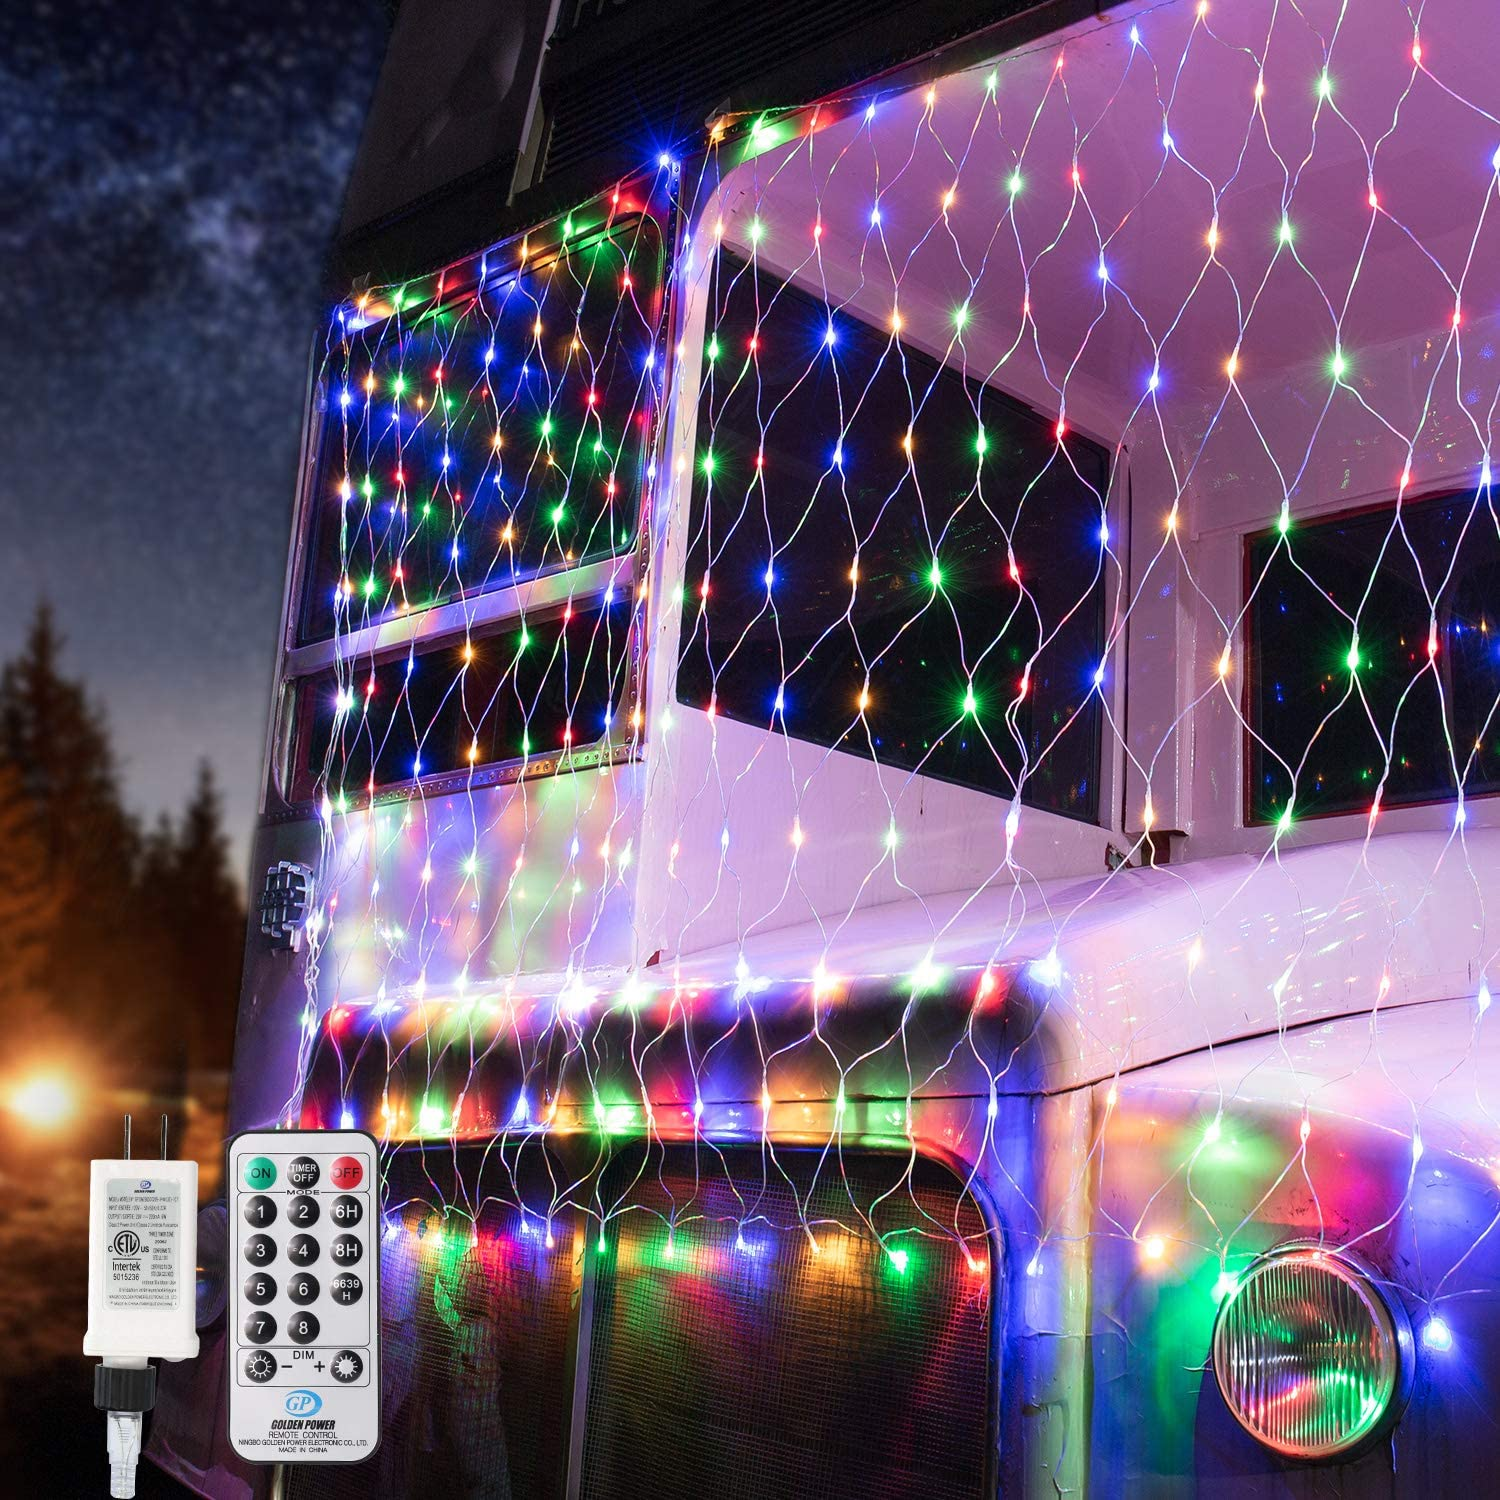 BrizLabs Christmas Net Lights Multicolor, 11.8ft x 4.9ft 360 LED Mesh String Lights with Remote, 8 Modes Connectable Bush Net String Lights, Plug in Xmas Lights for Trees Garden Outdoor Indoor Decor